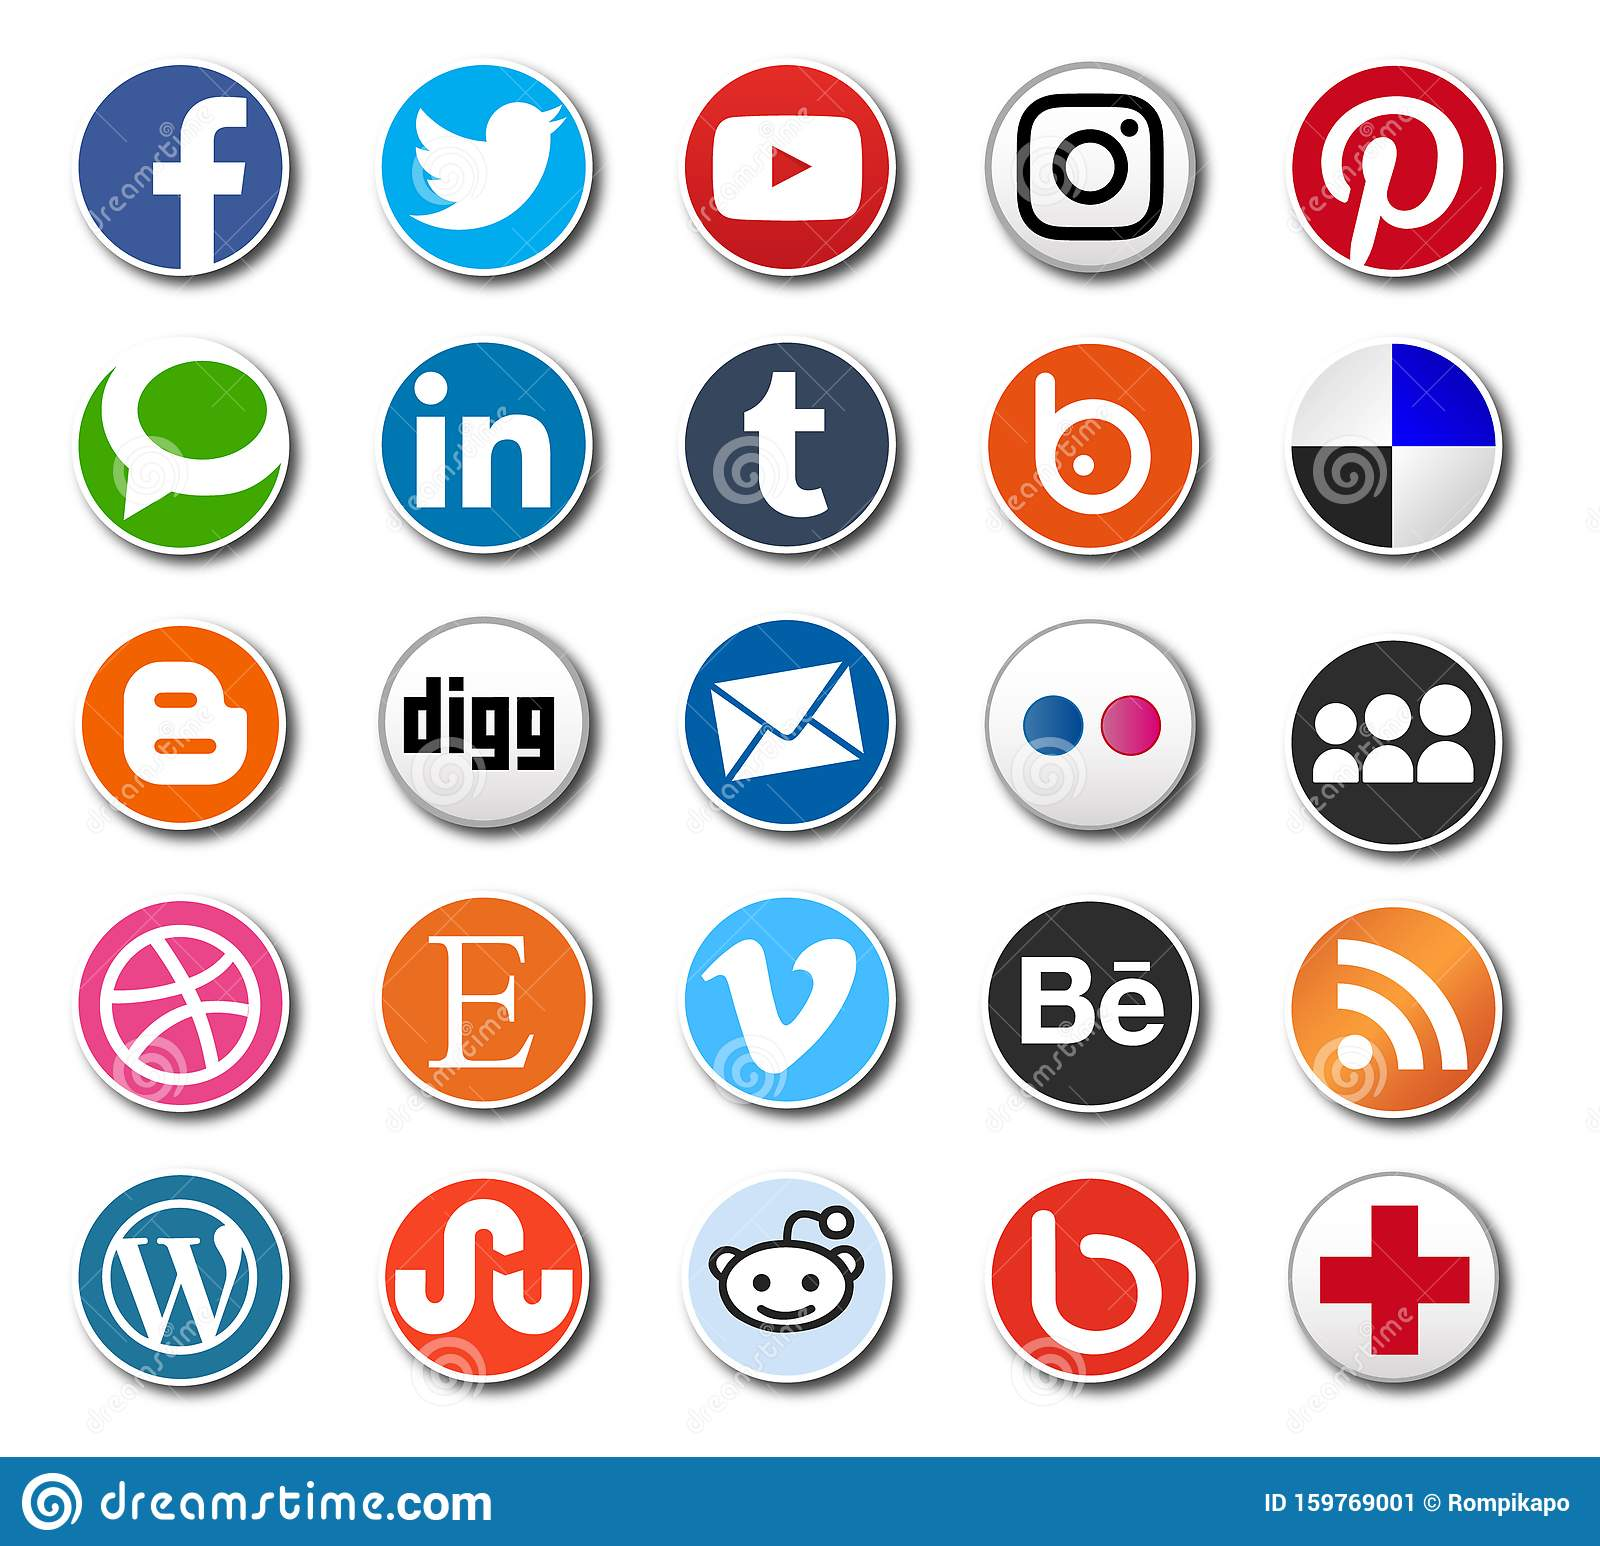 Round Social Media Icons Vector Sharing Buttons For Web Design And Printing Editorial Photo Illustration Of Content Illustration 159769001